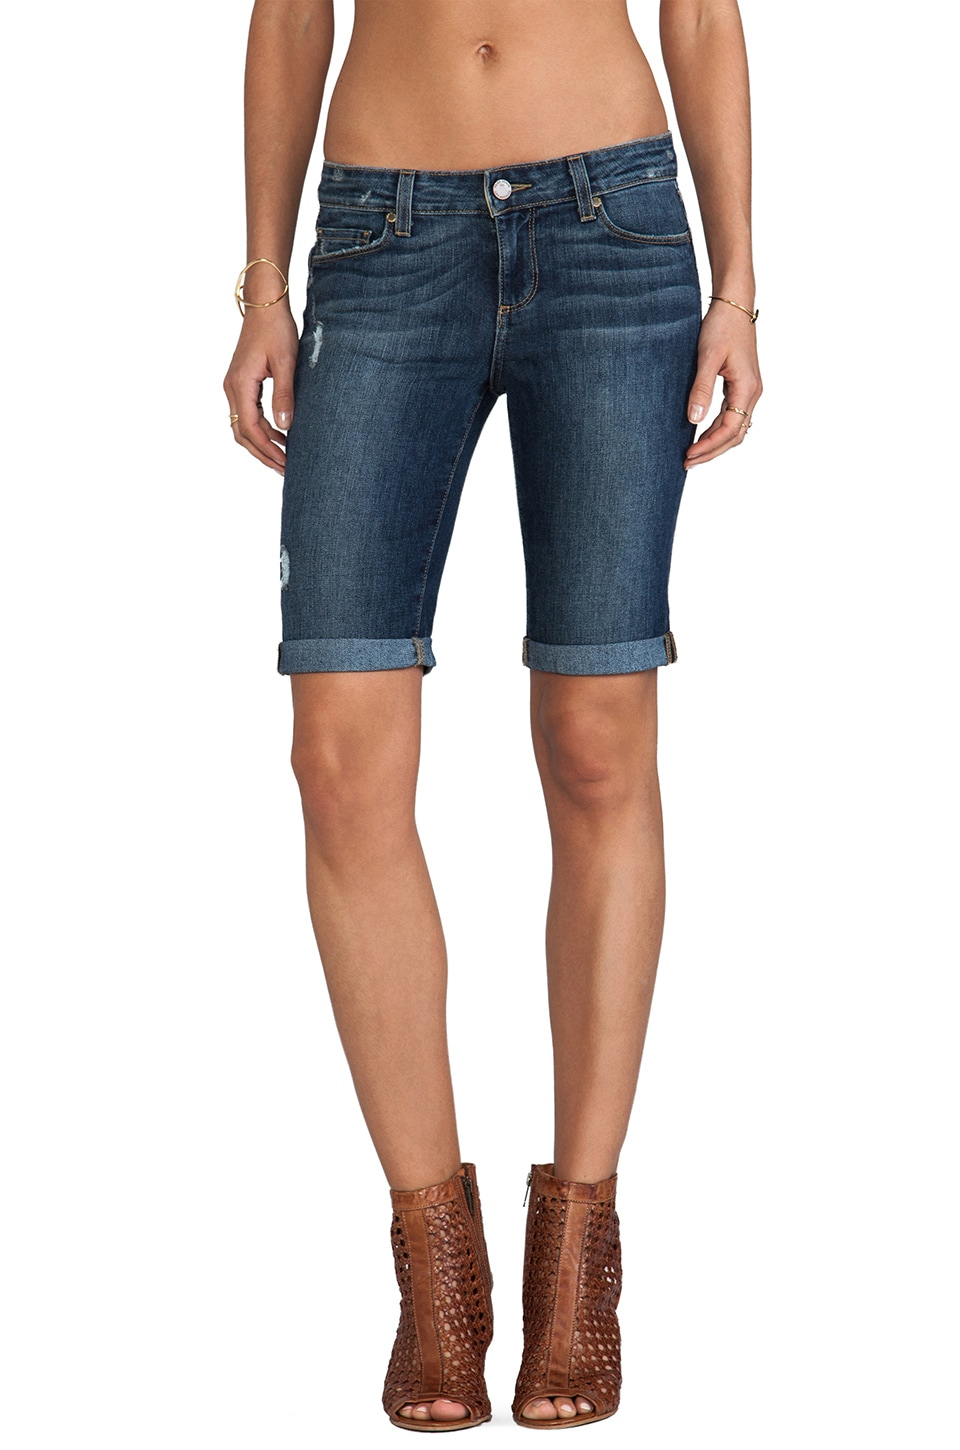 Paige Denim Jax Knee Short in Luca